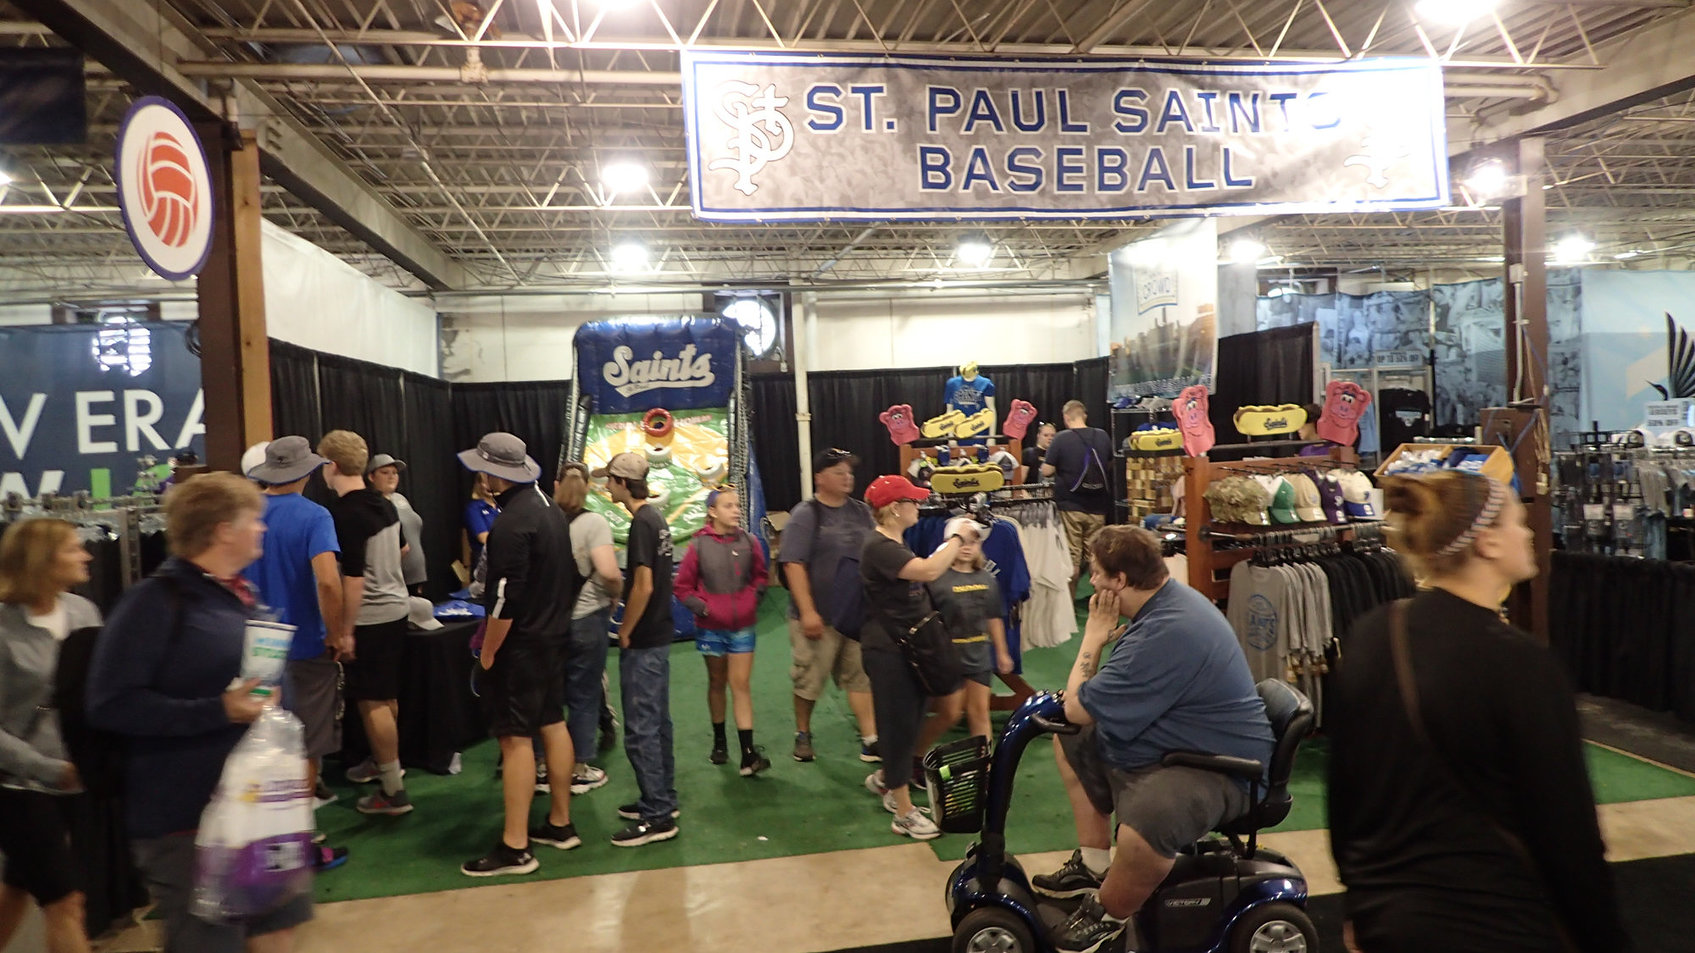 St. Paul Saints Baseball